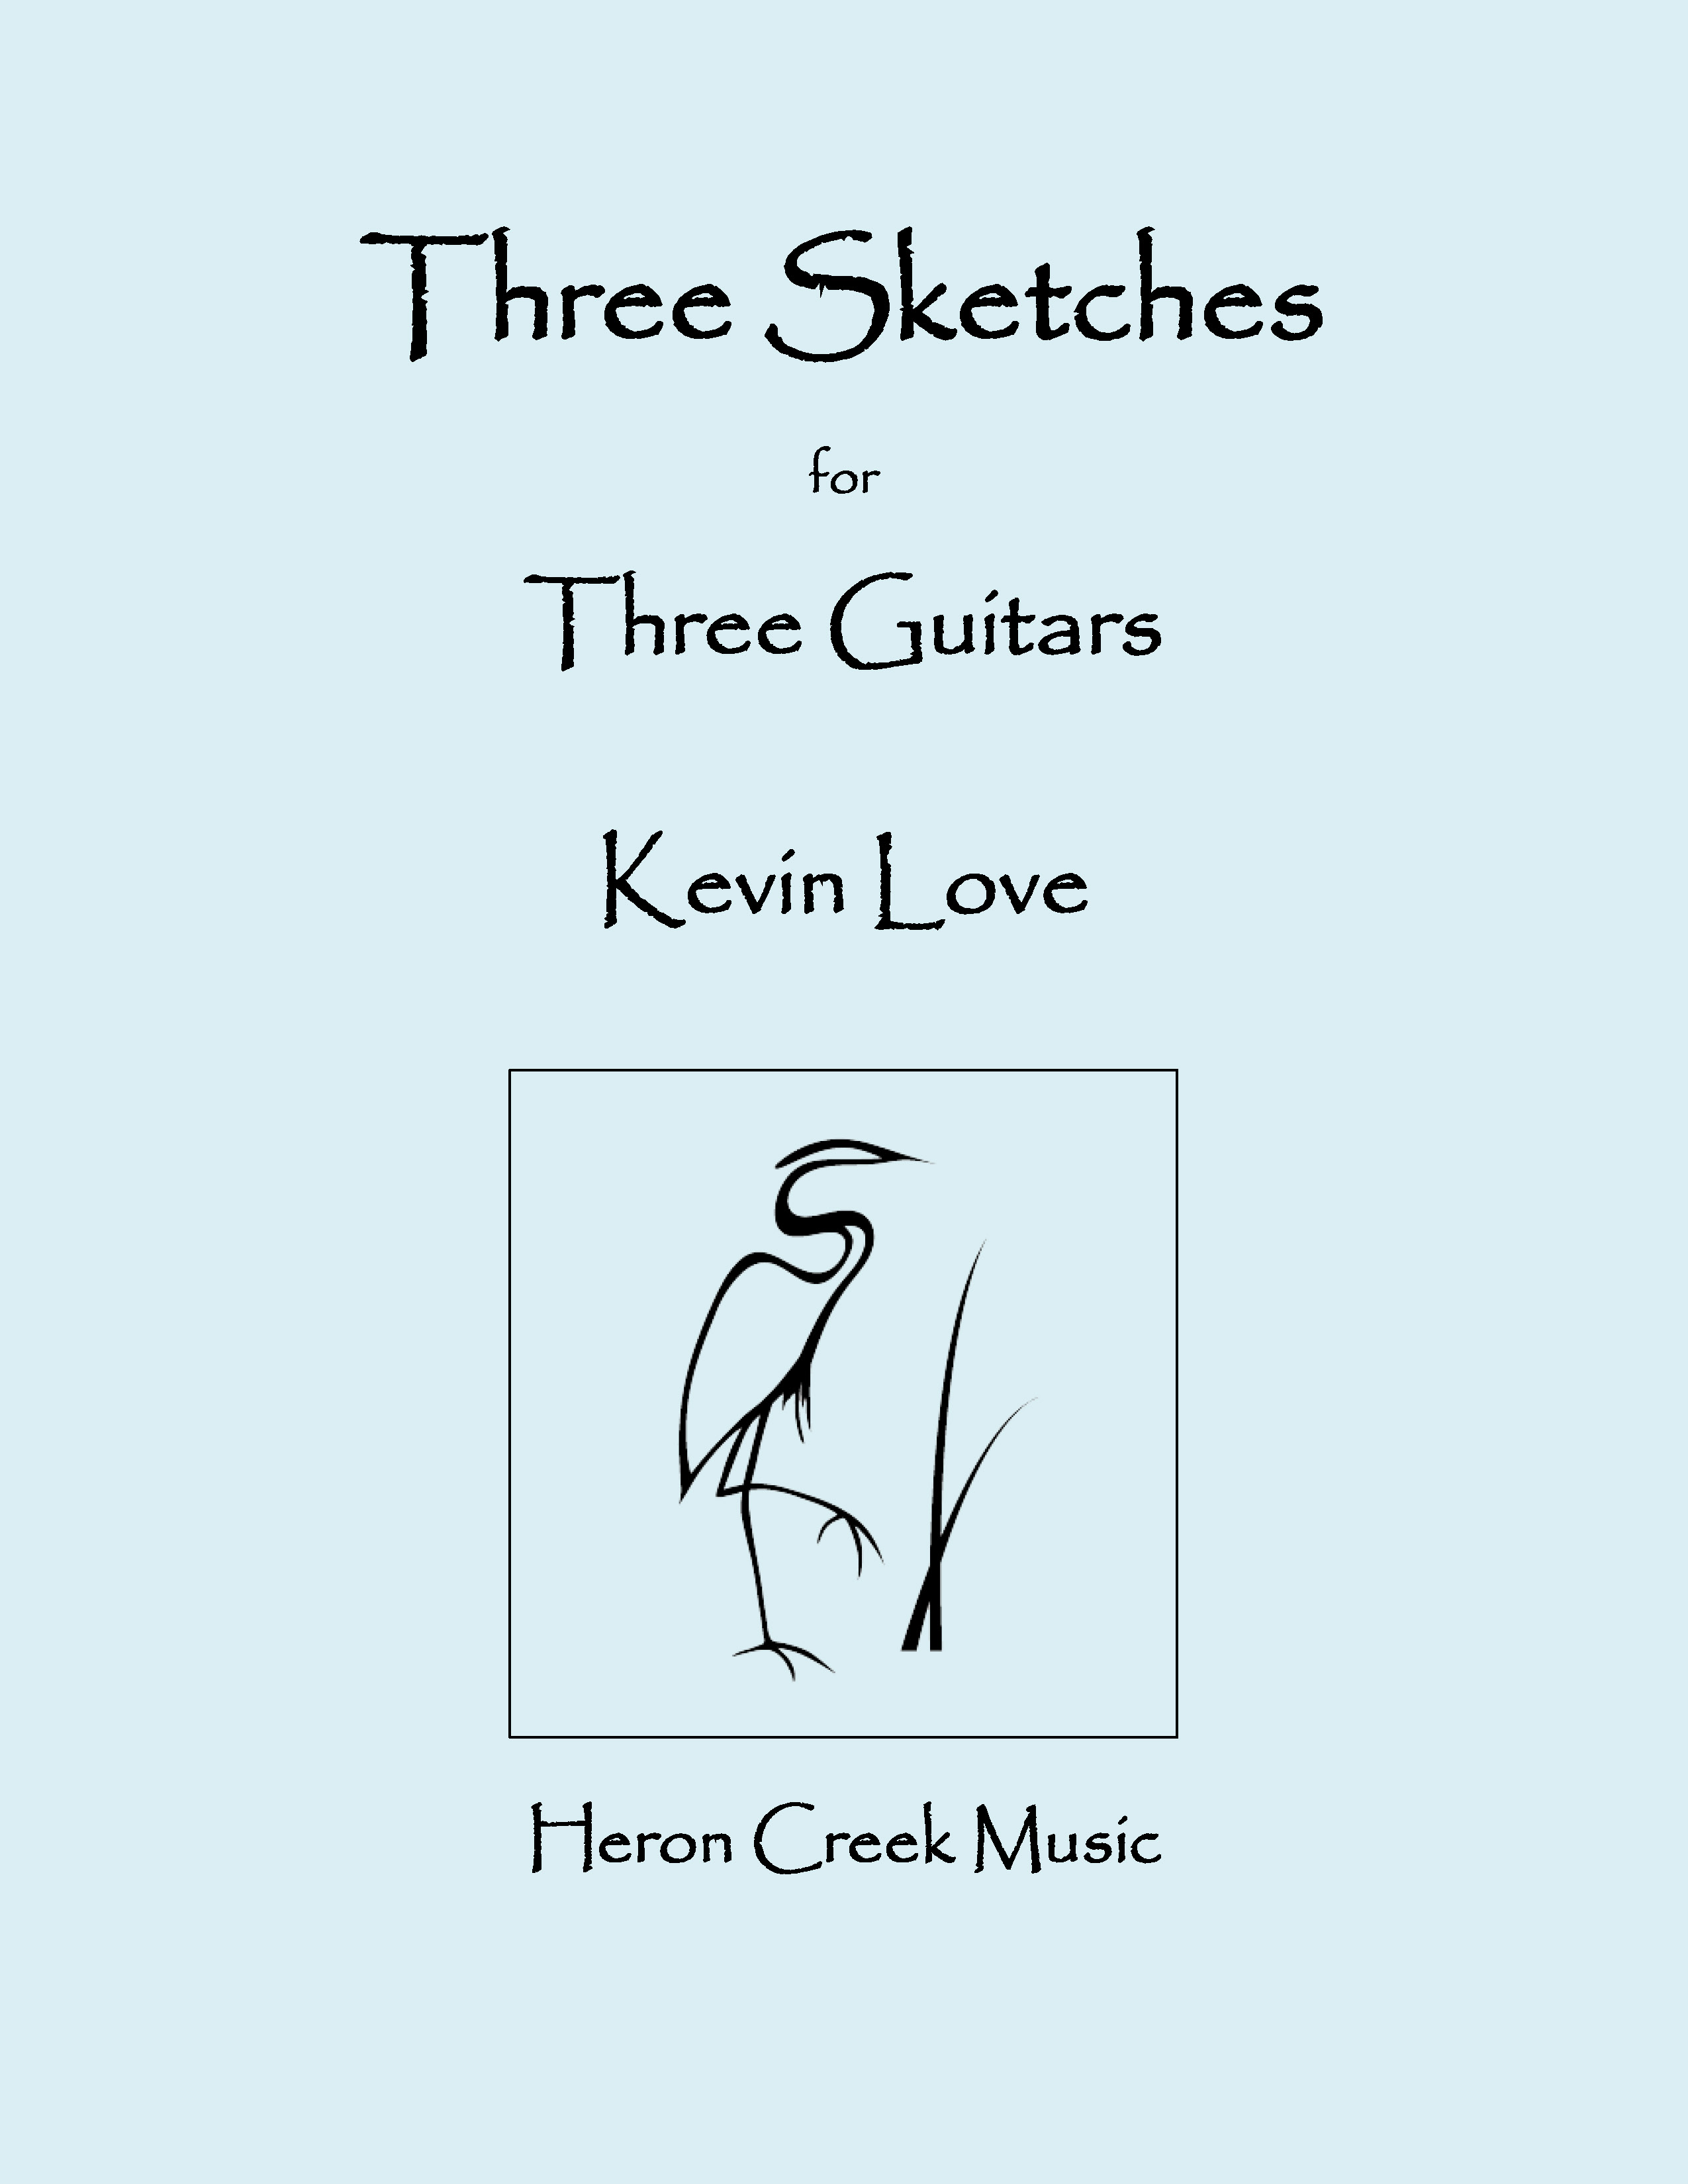 Three Sketches for Three Guitars